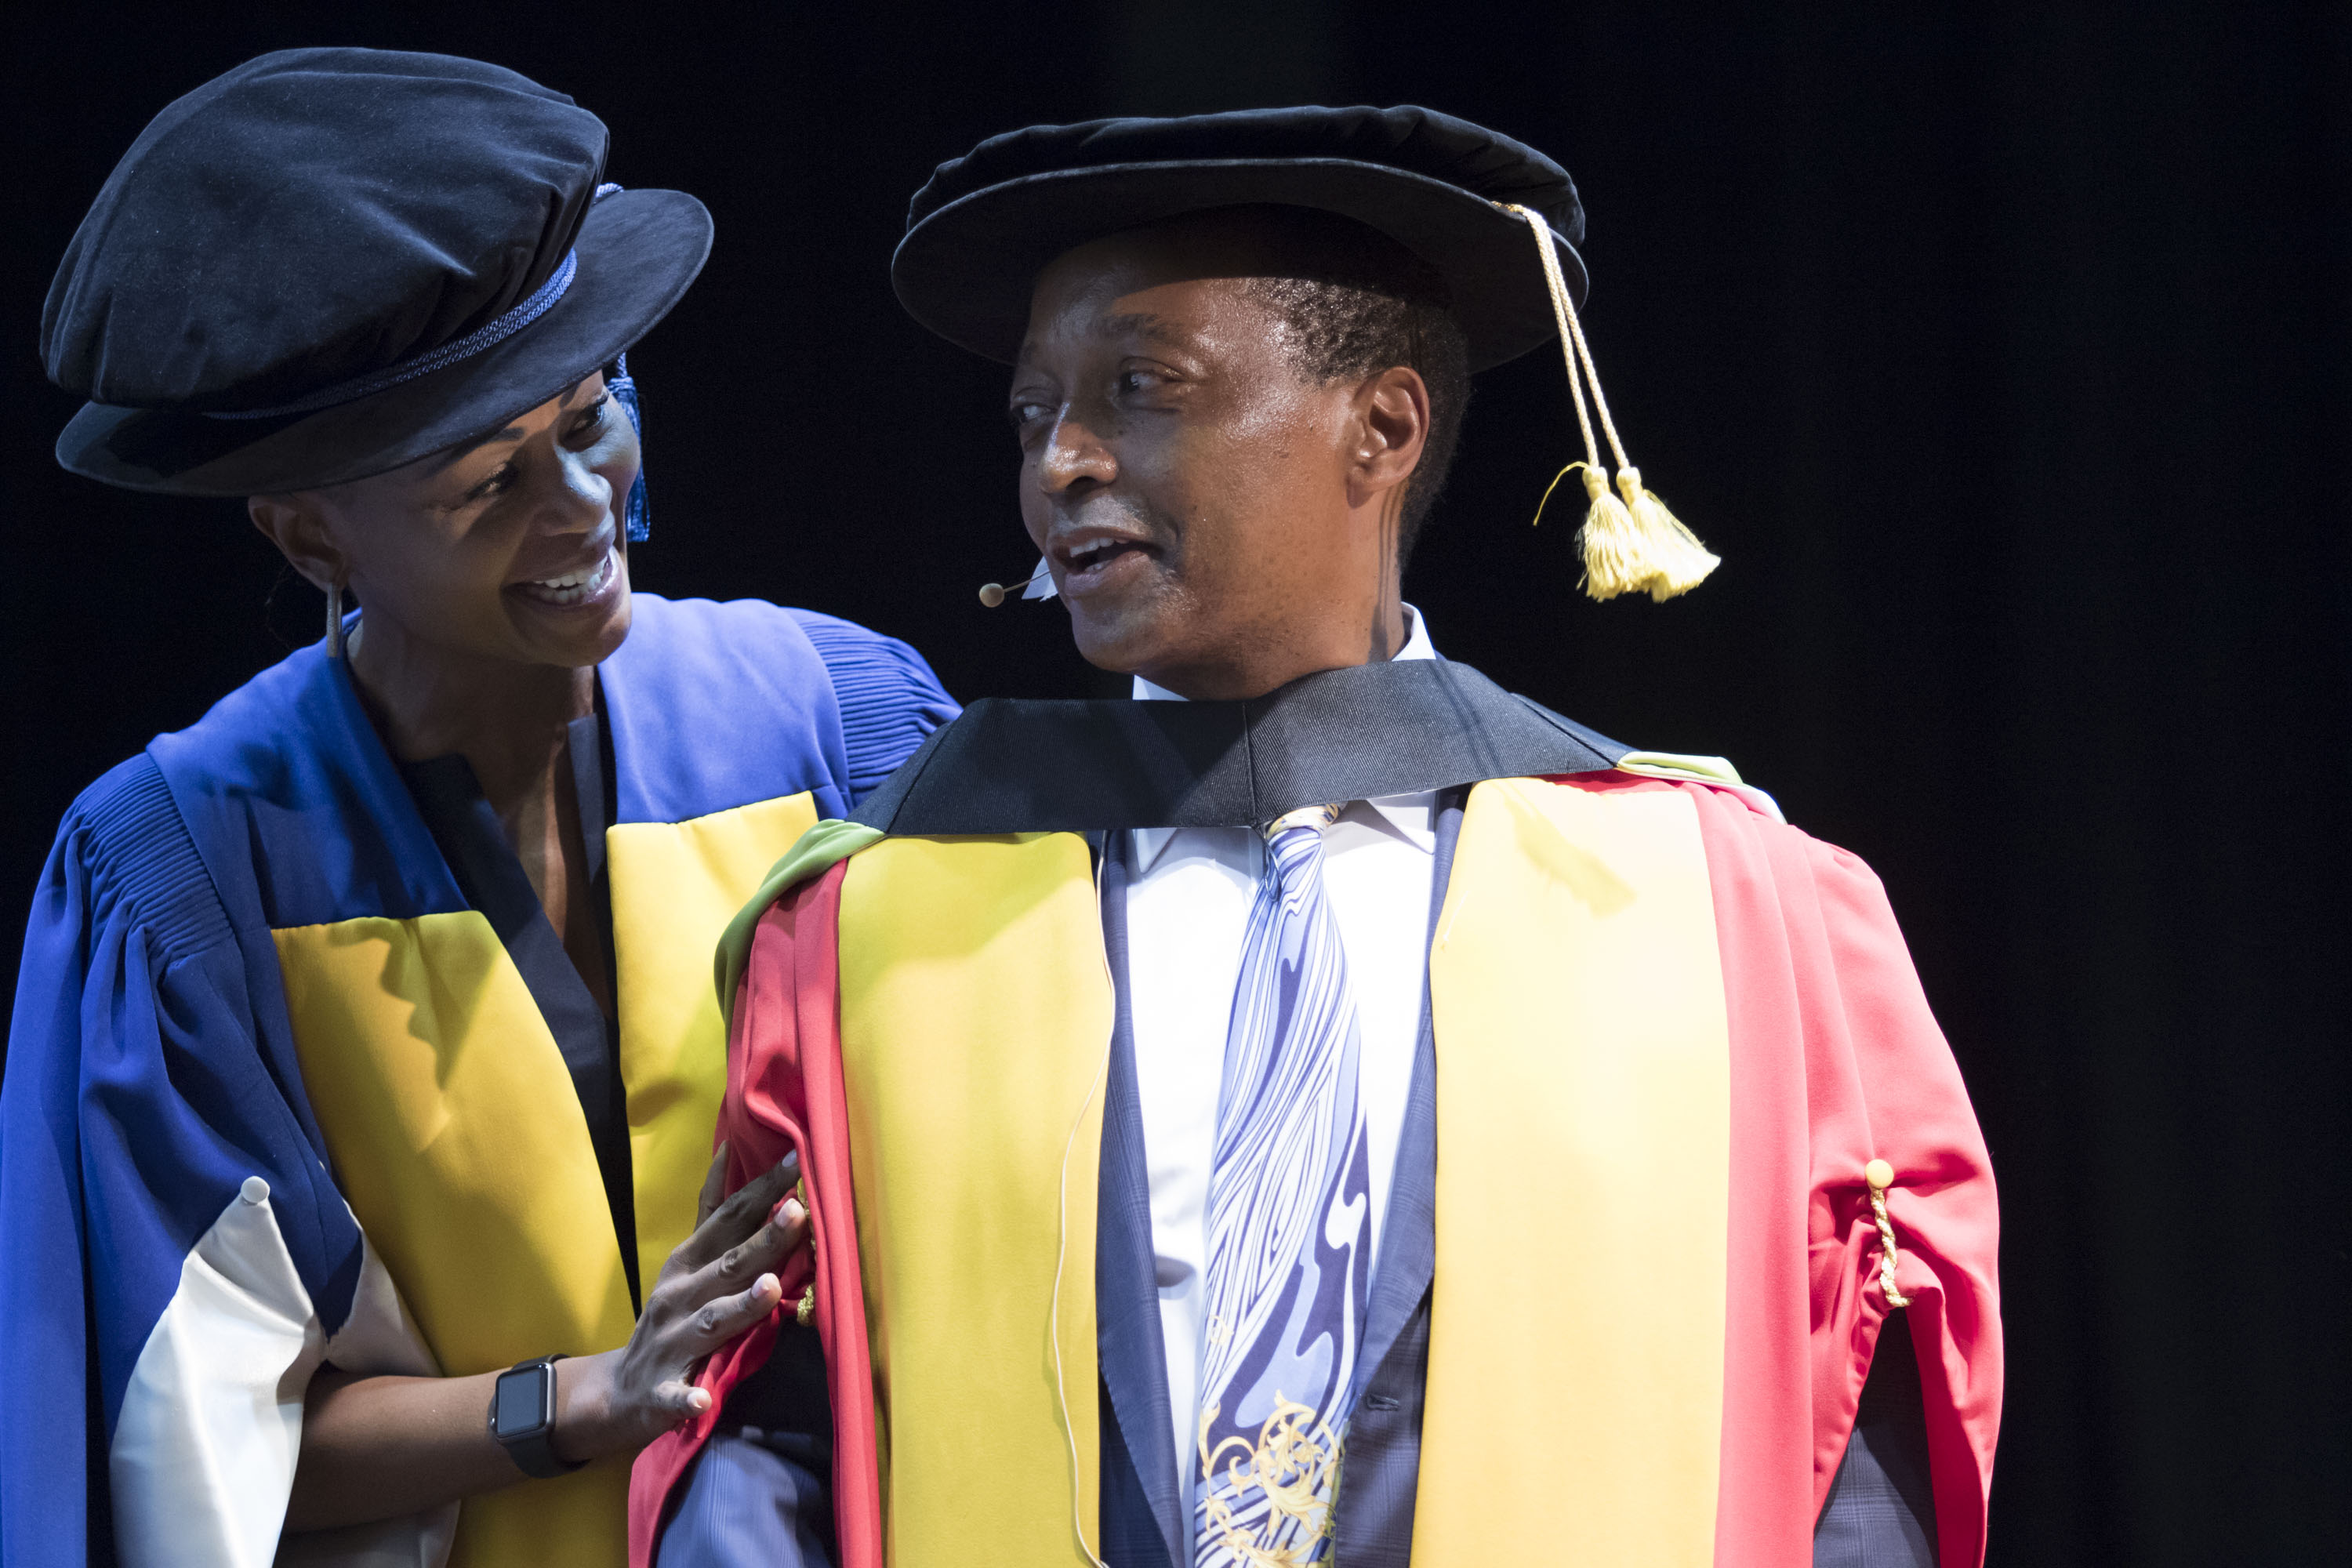 Business tycoon and philanthropist Patrice Motsepe with Wits Chancellor Justice Dikgang Moseneke